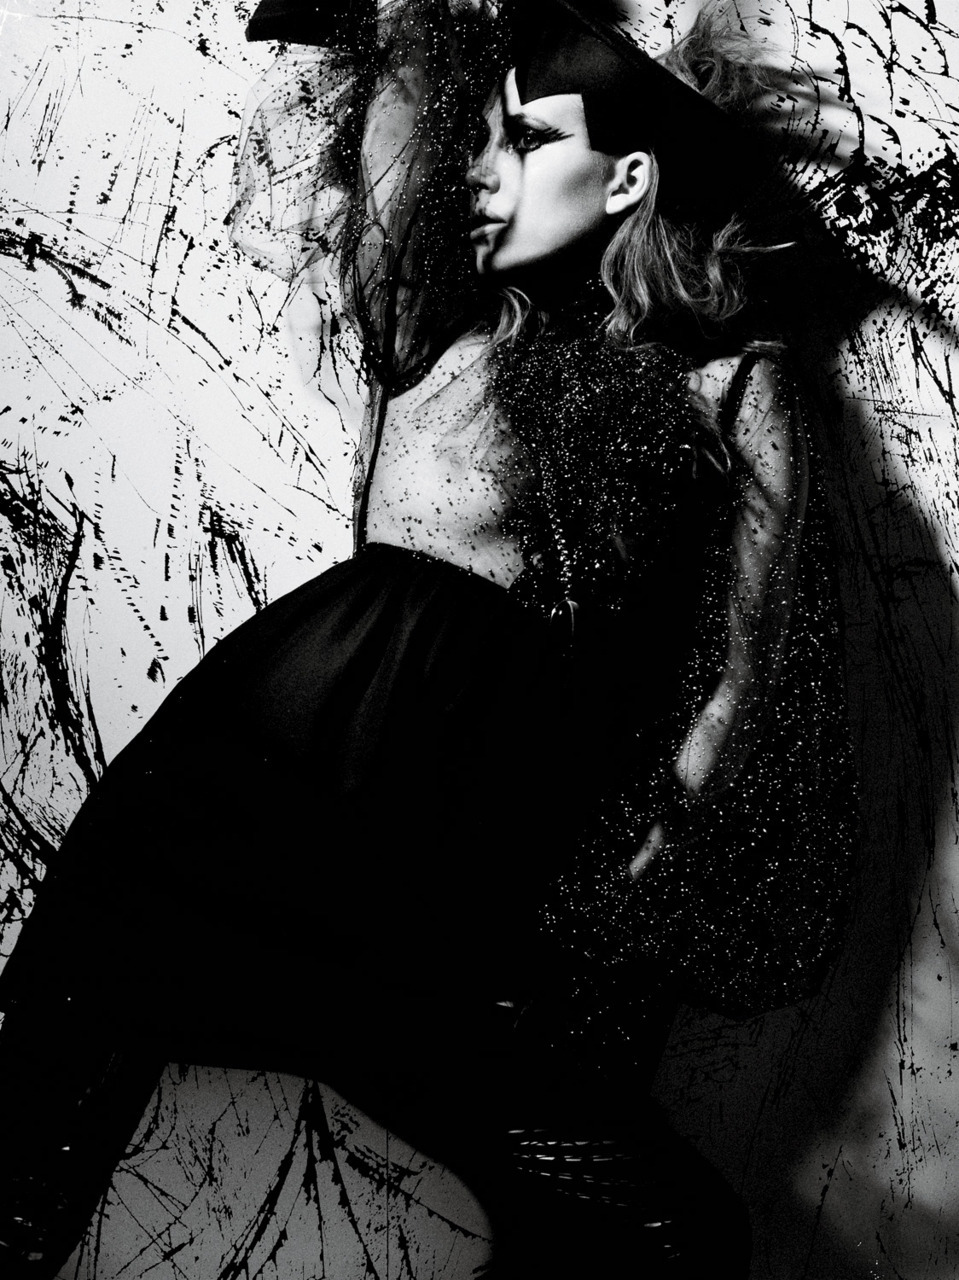 conceptuallydriven:  Lykke Li for Interview magazine. Photography by Craig McDean